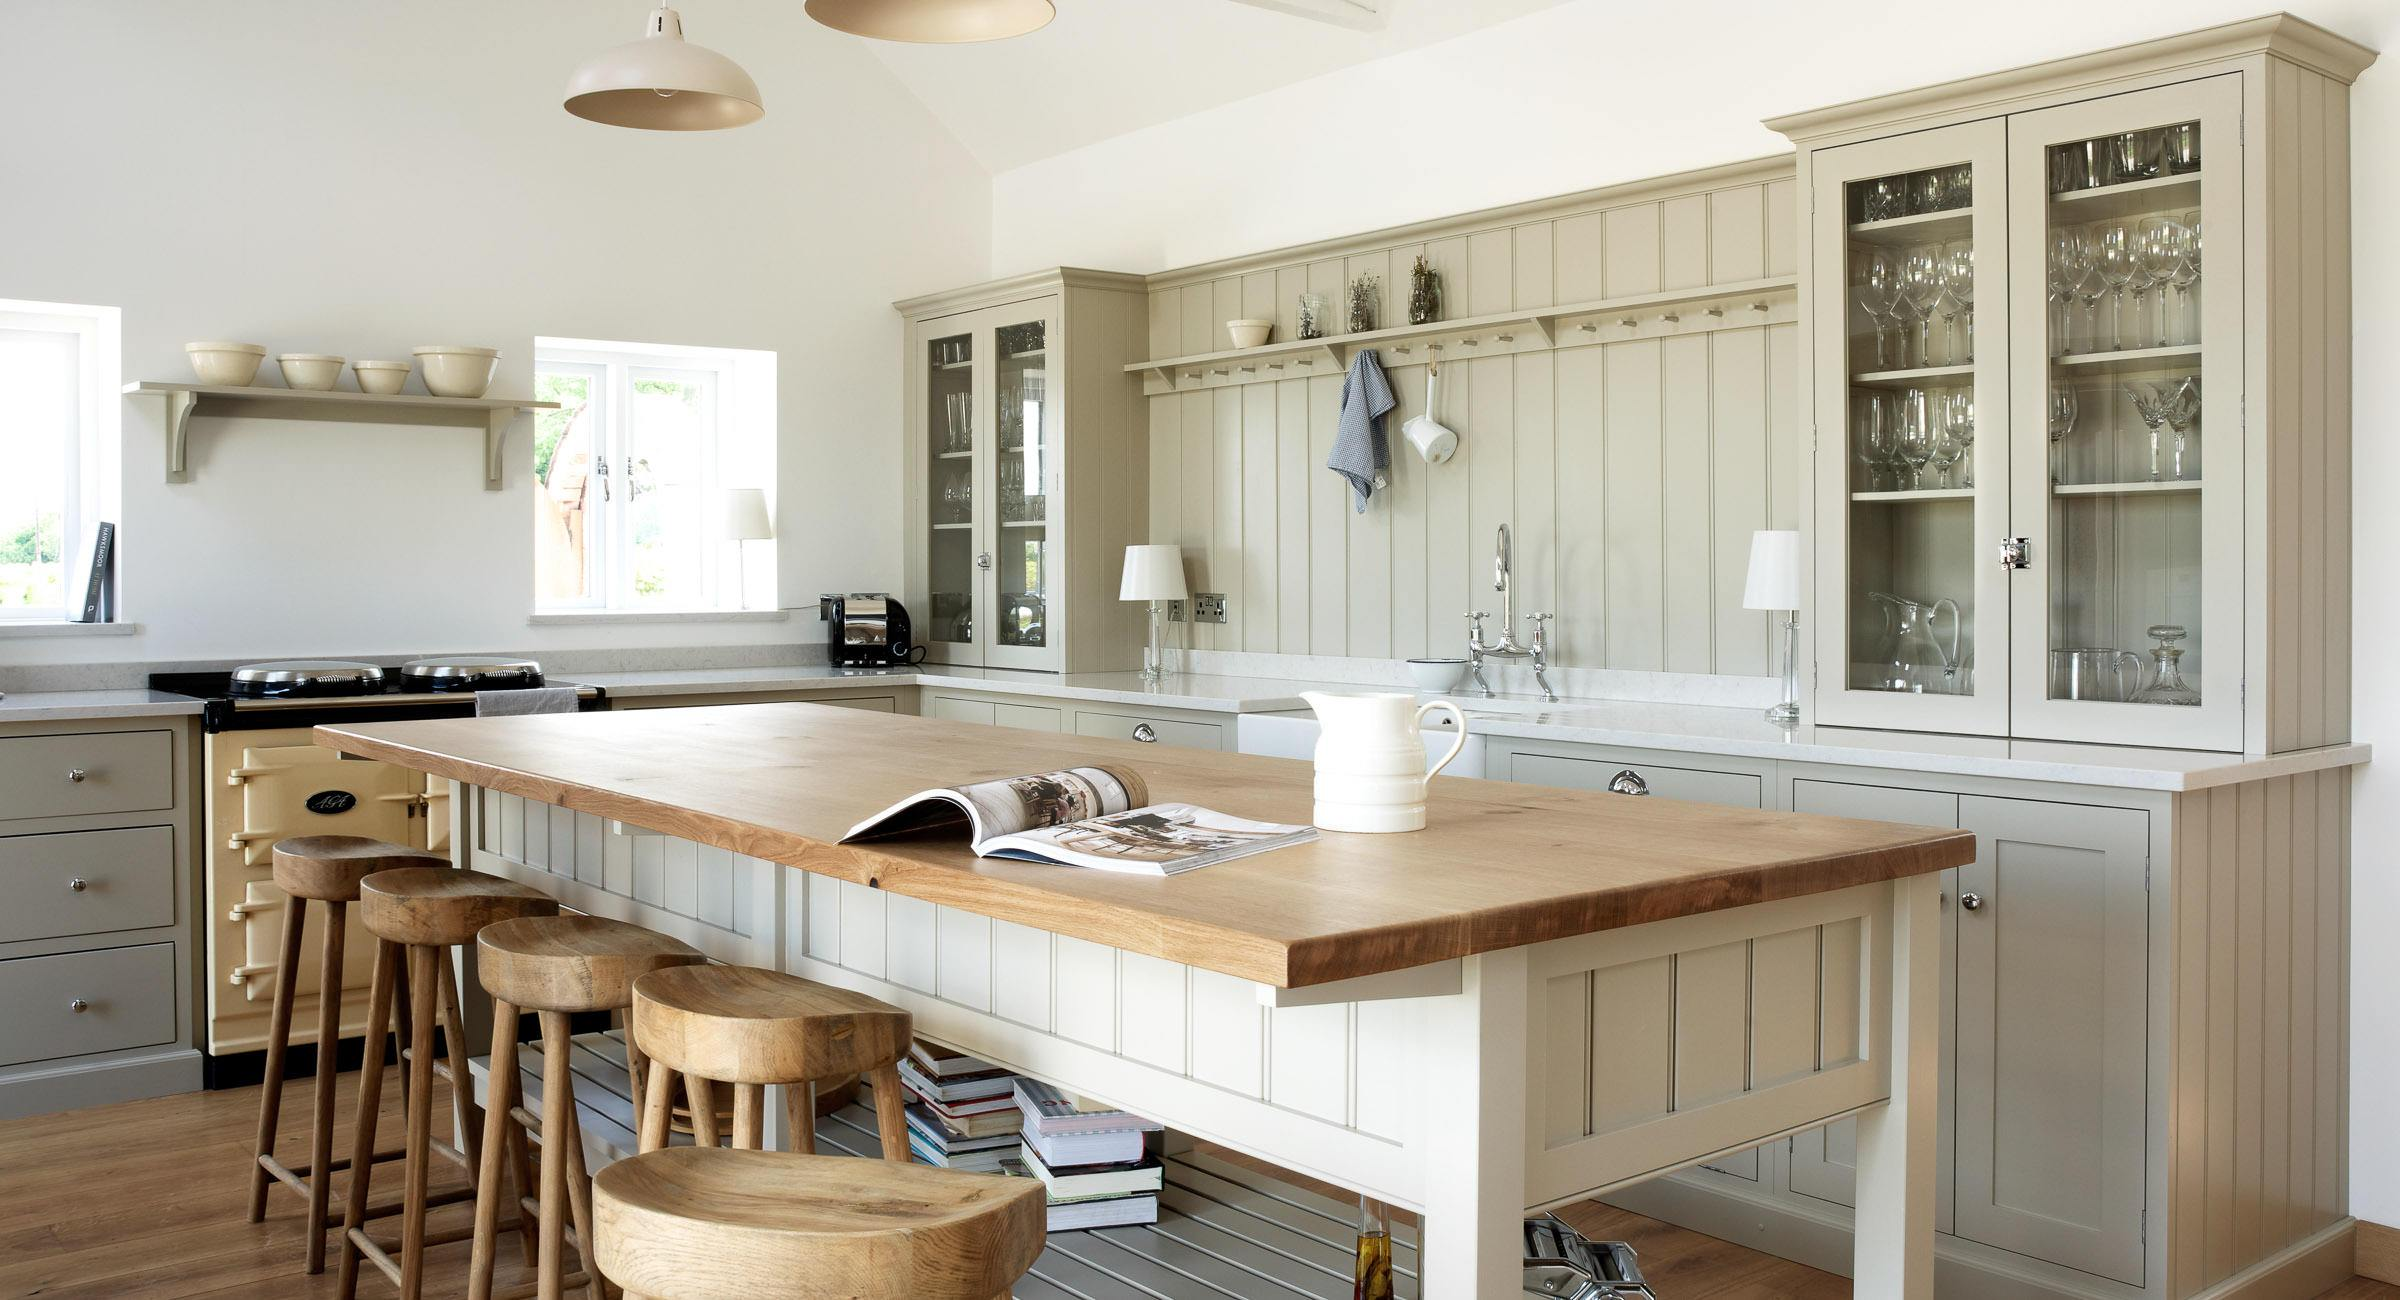 shaker kitchen shaker kitchen island A beautiful barn in Warwickshire is the setting for this family friendly Shaker kitchen with tongue